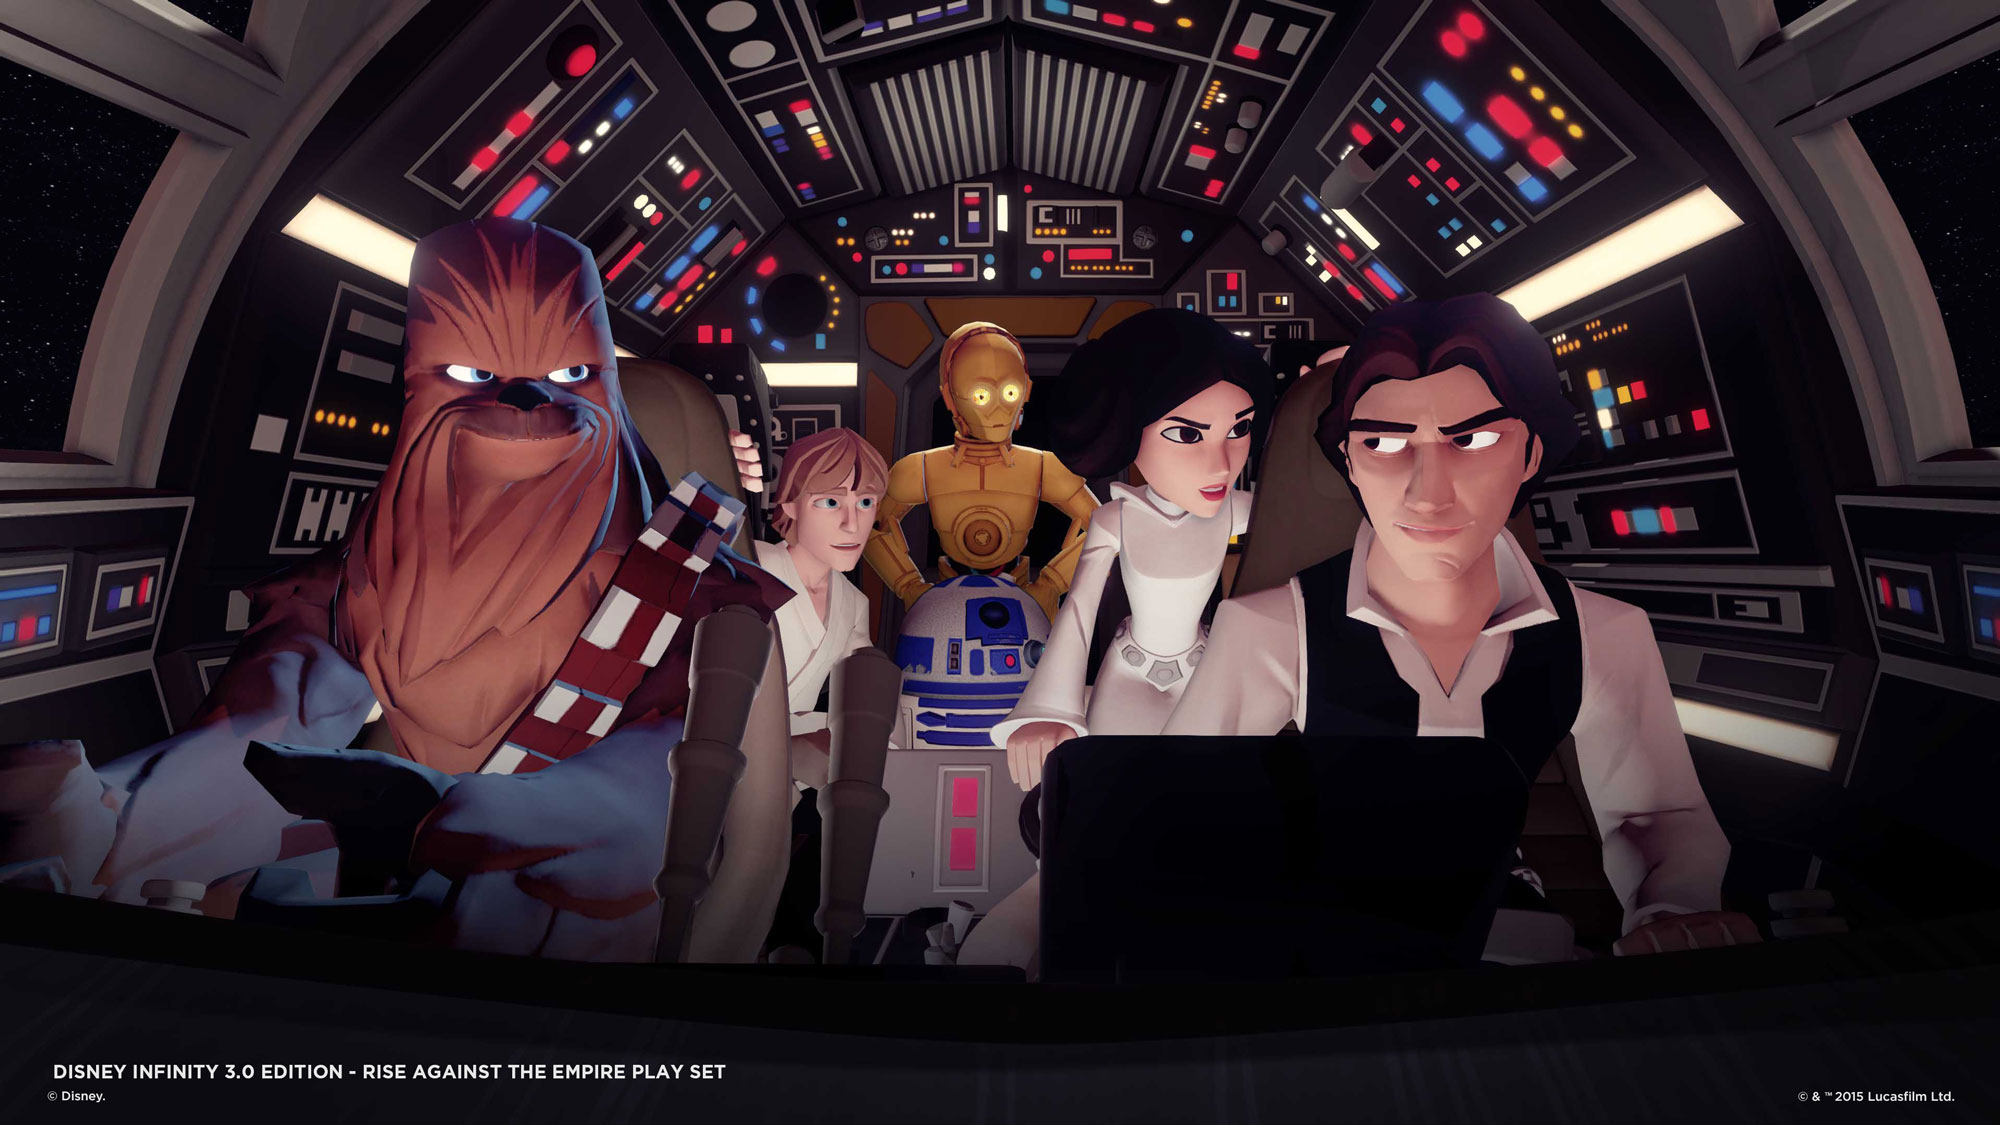 Disney Infinity 3.0: Star Wars Character Wishlist